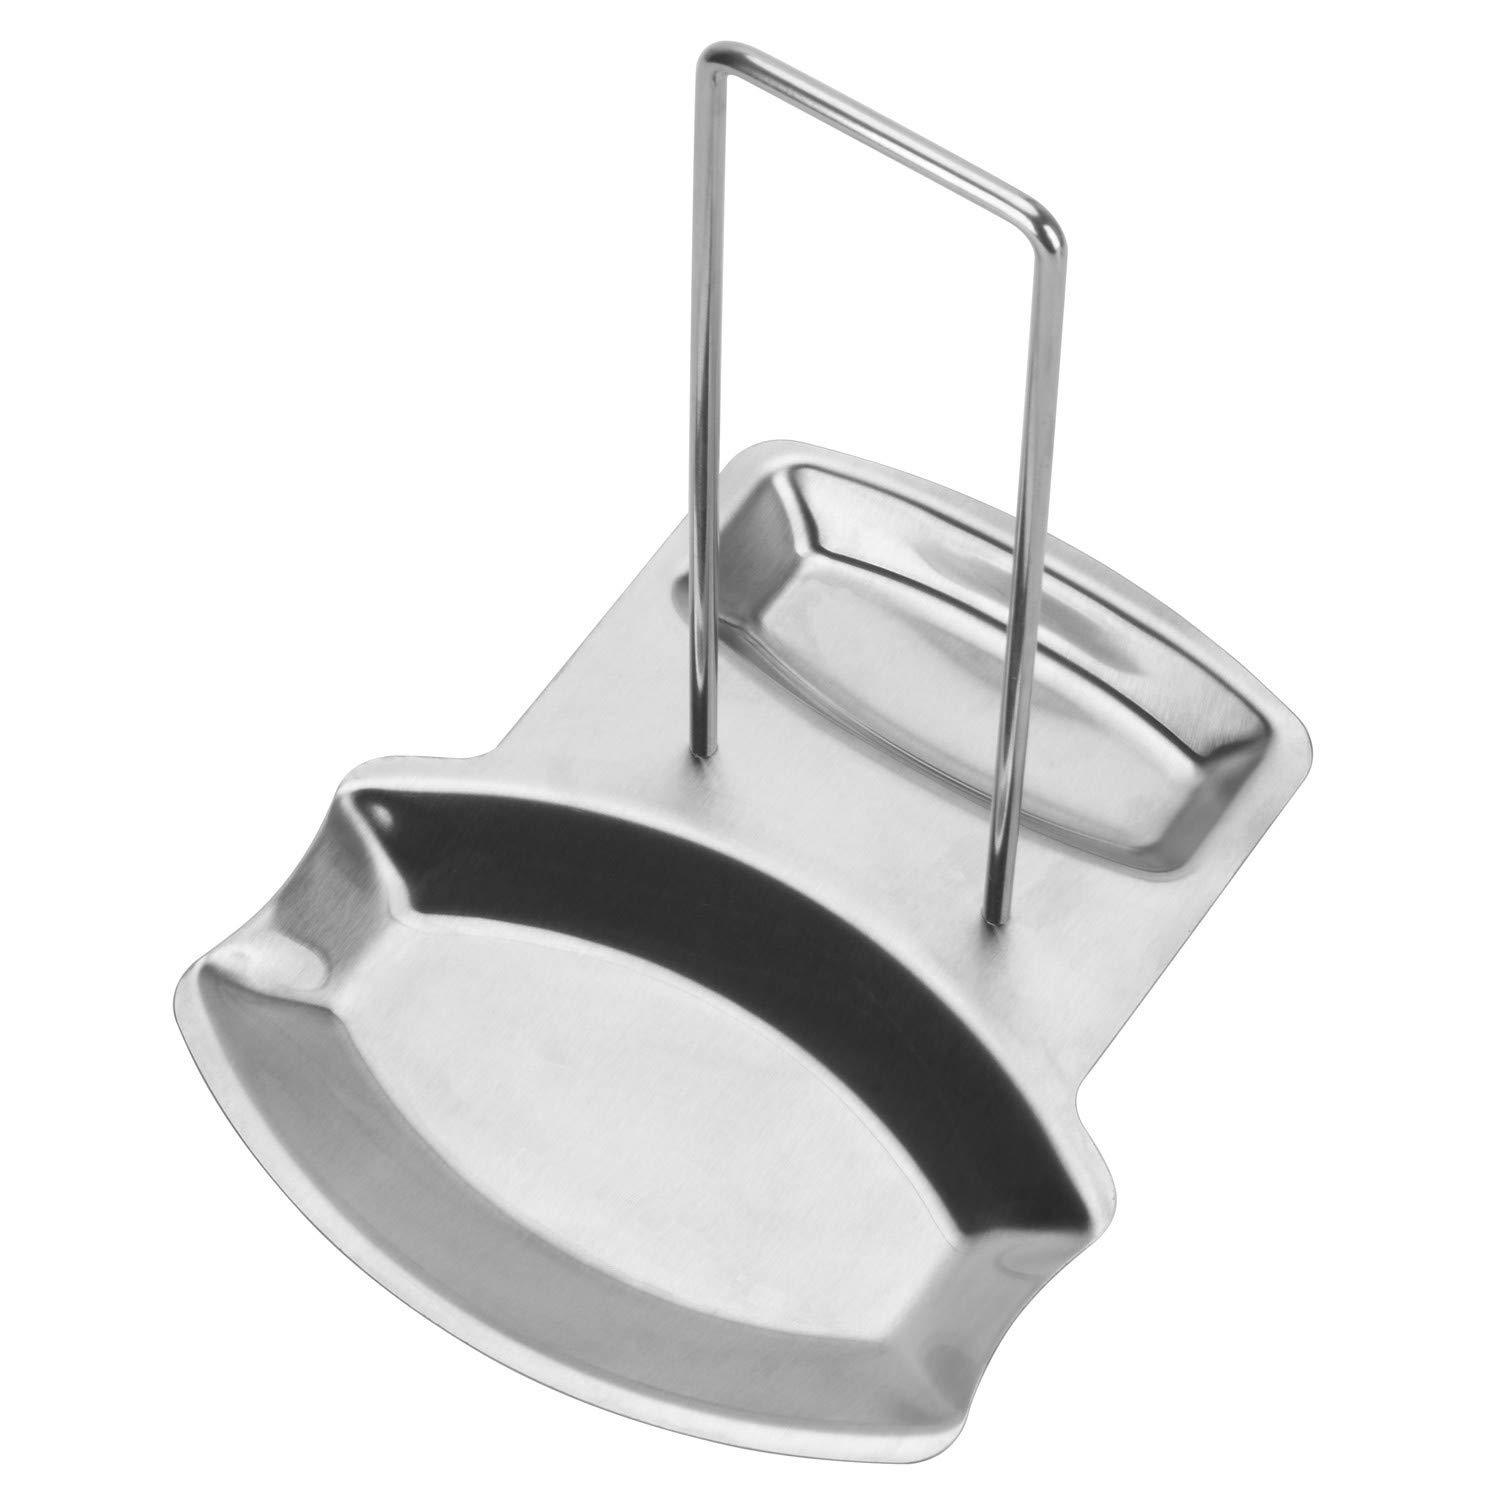 Stainless Steel Pan Pot Cover Lid Rack Stand Spoon Rest Stove Organizer Storage Soup Spoon Rests Kitchen Tool huaminxiangyue SYNCHKG114176